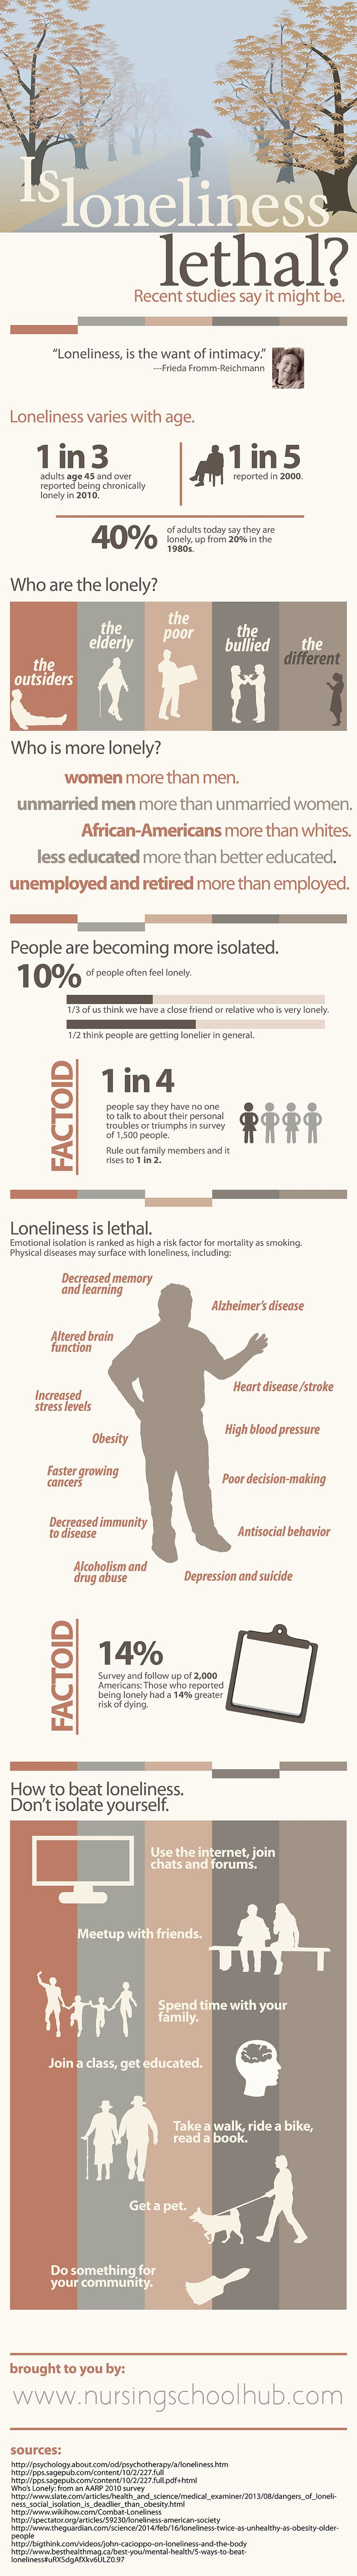 Studies show that loneliness can be lethal.  It is Suicide Awareness Month.  Lets prevent loneliness.  Thanks for liking and sharing!